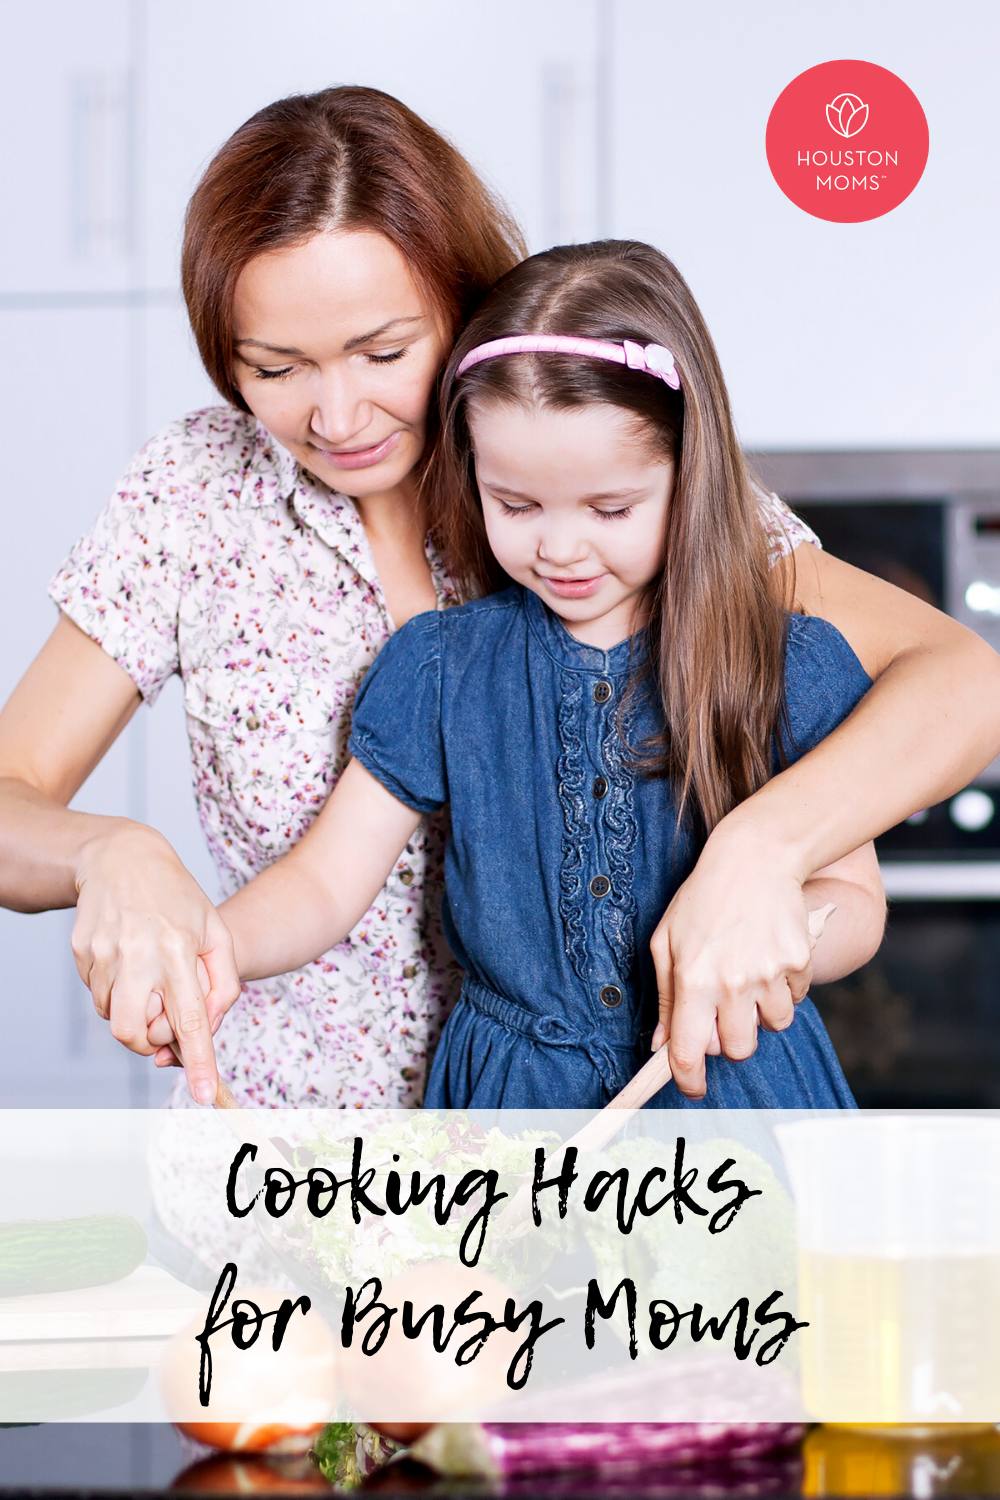 """Houston Moms """"Cooking Hacks for Busy Moms"""" #houstonmoms #houstonmomsblog #momsaroundhouston"""